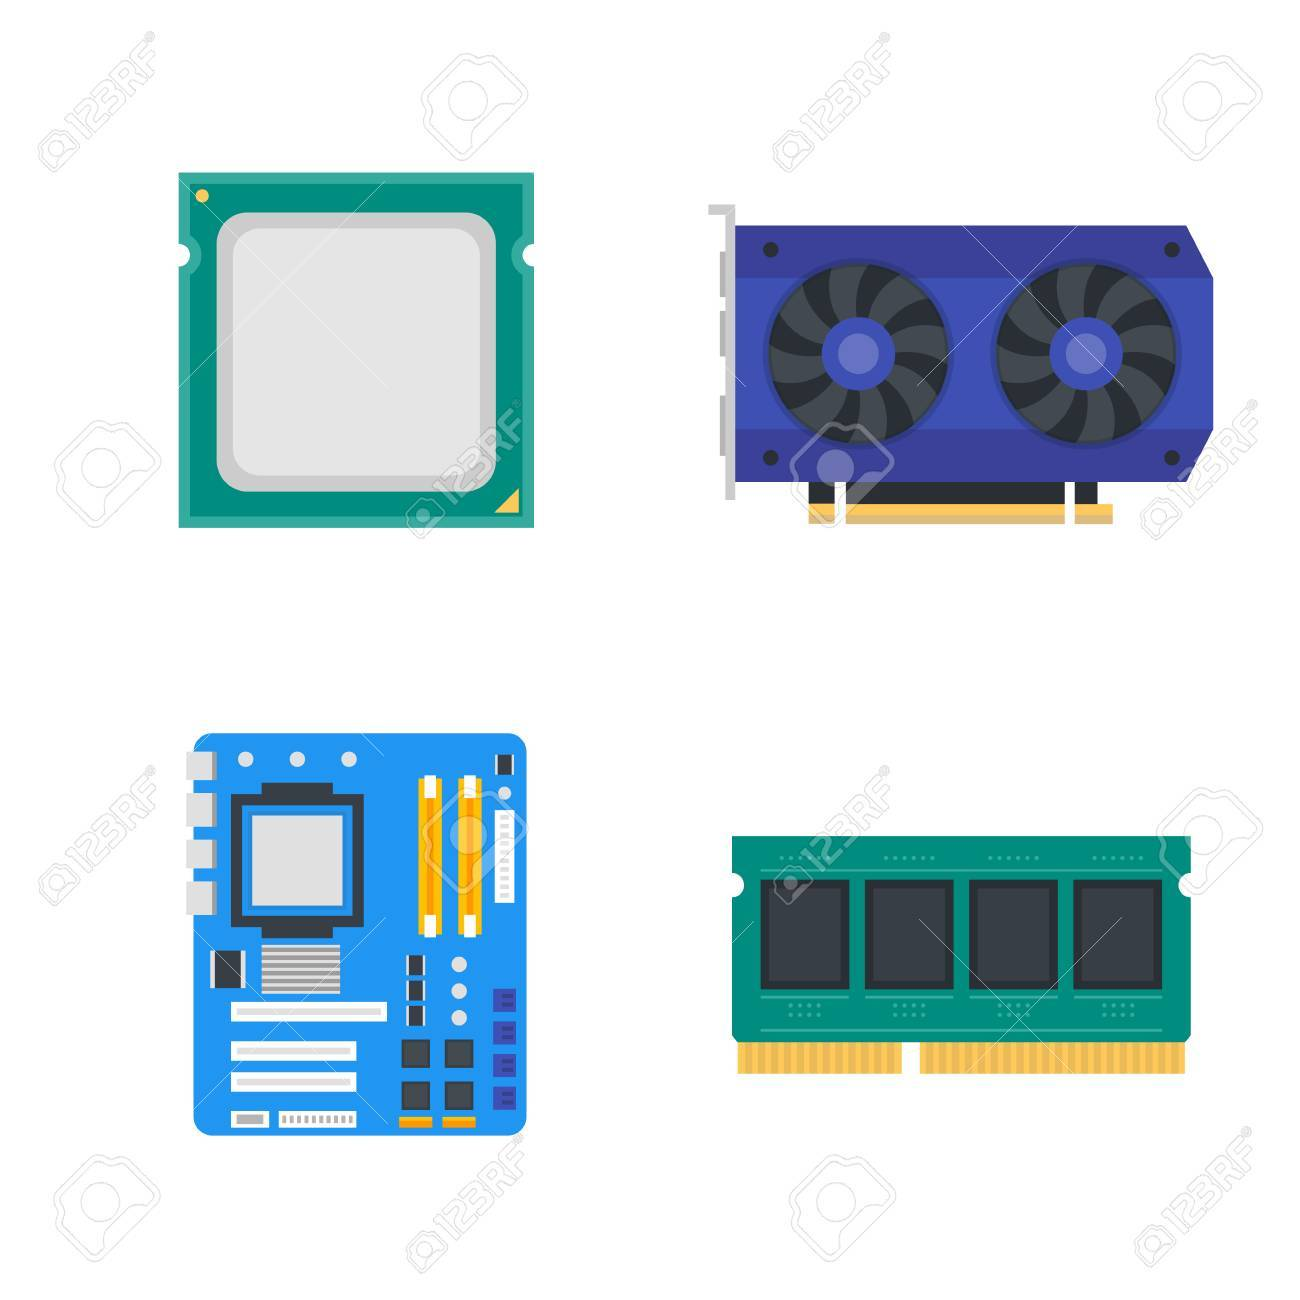 computer components icons motherboard memory video card cpu royalty free cliparts vectors and stock illustration image 85710940 computer components icons motherboard memory video card cpu